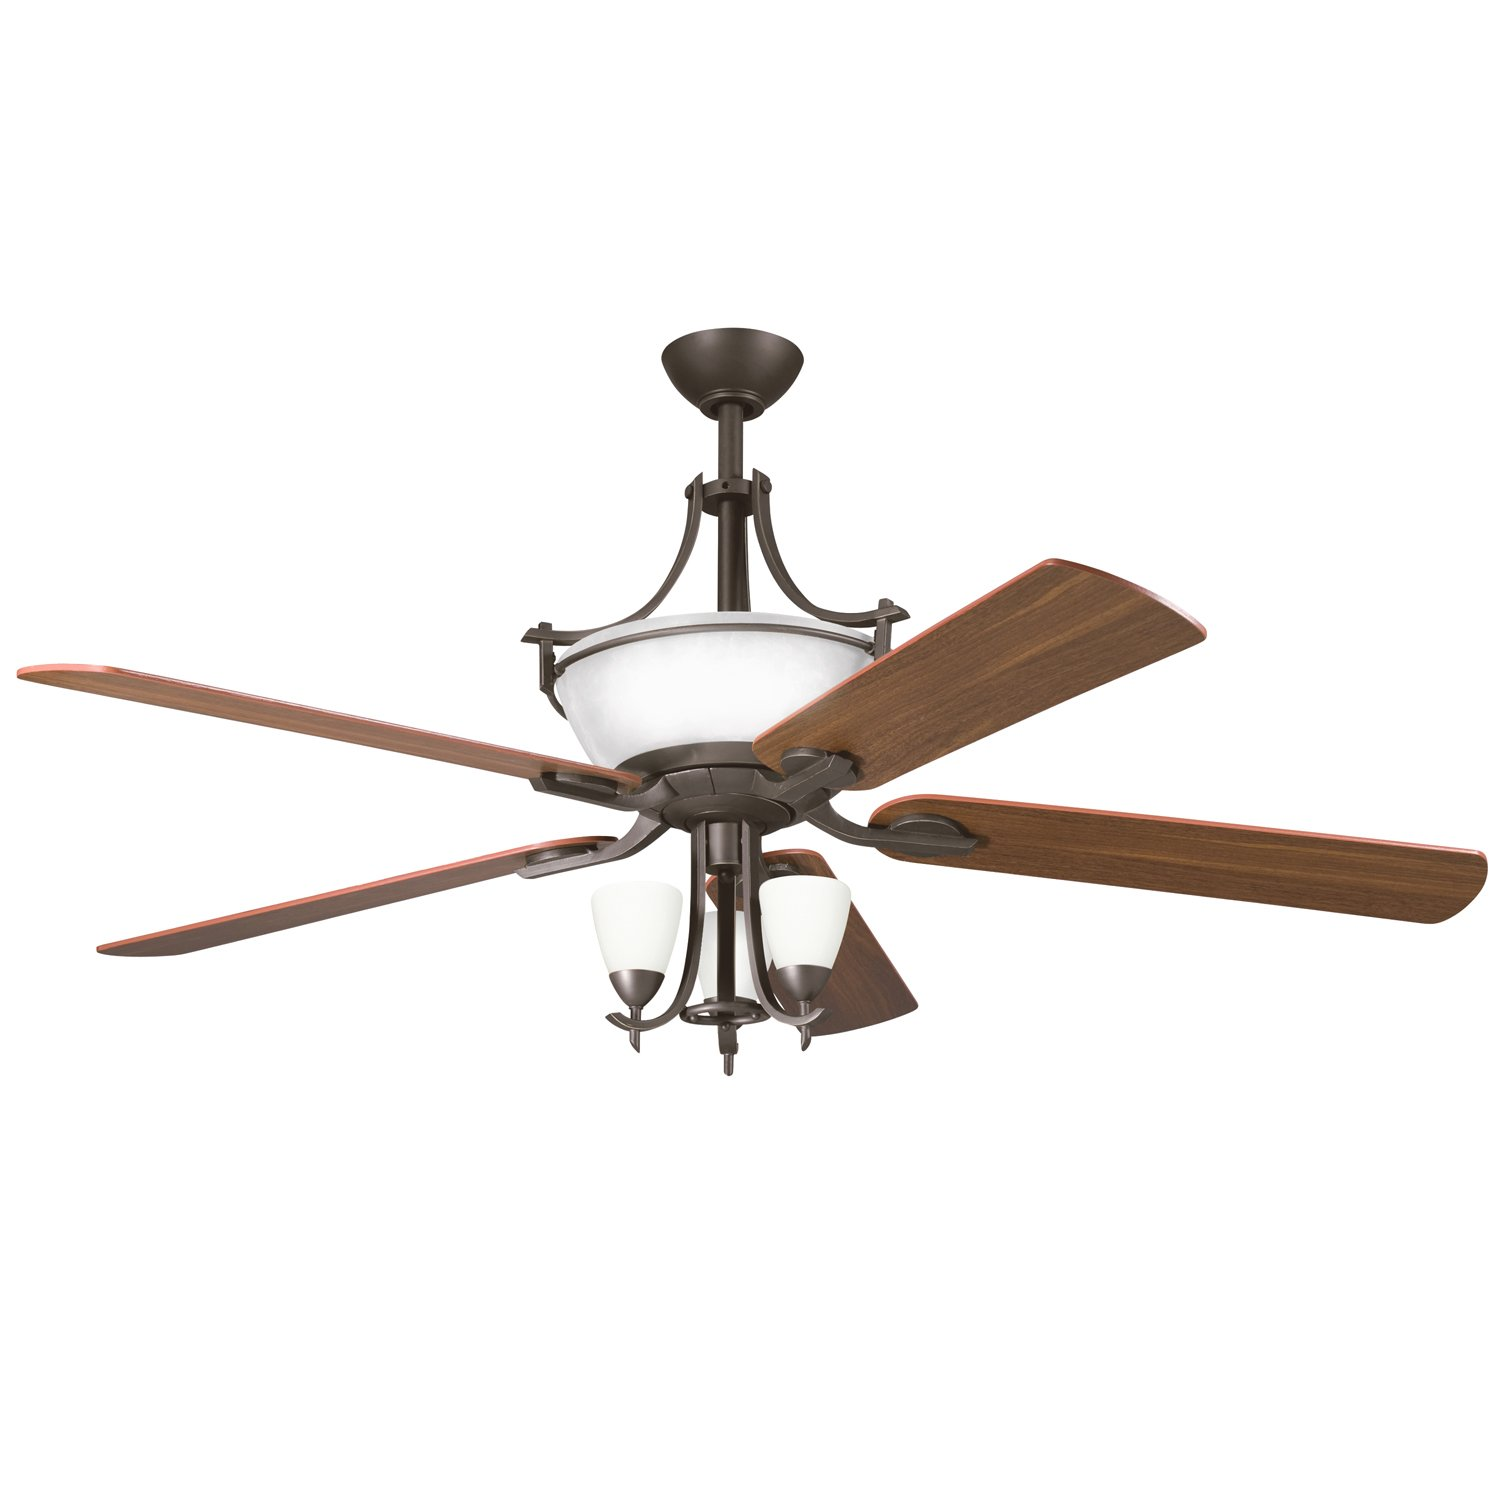 Kichler OZ 60 Ceiling Fan Amazon